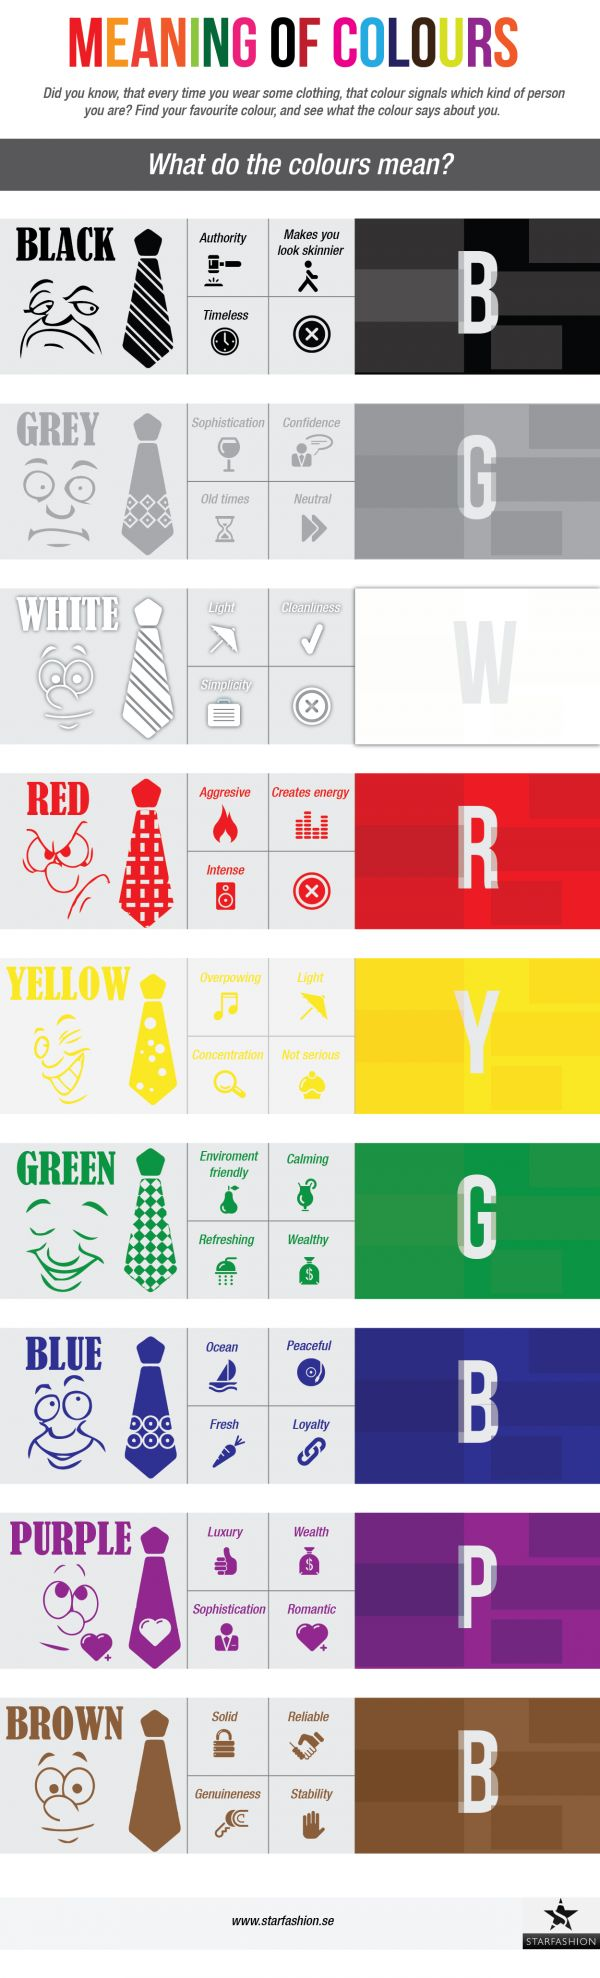 Color theory online games - Find This Pin And More On Color Theory Projects Art Class